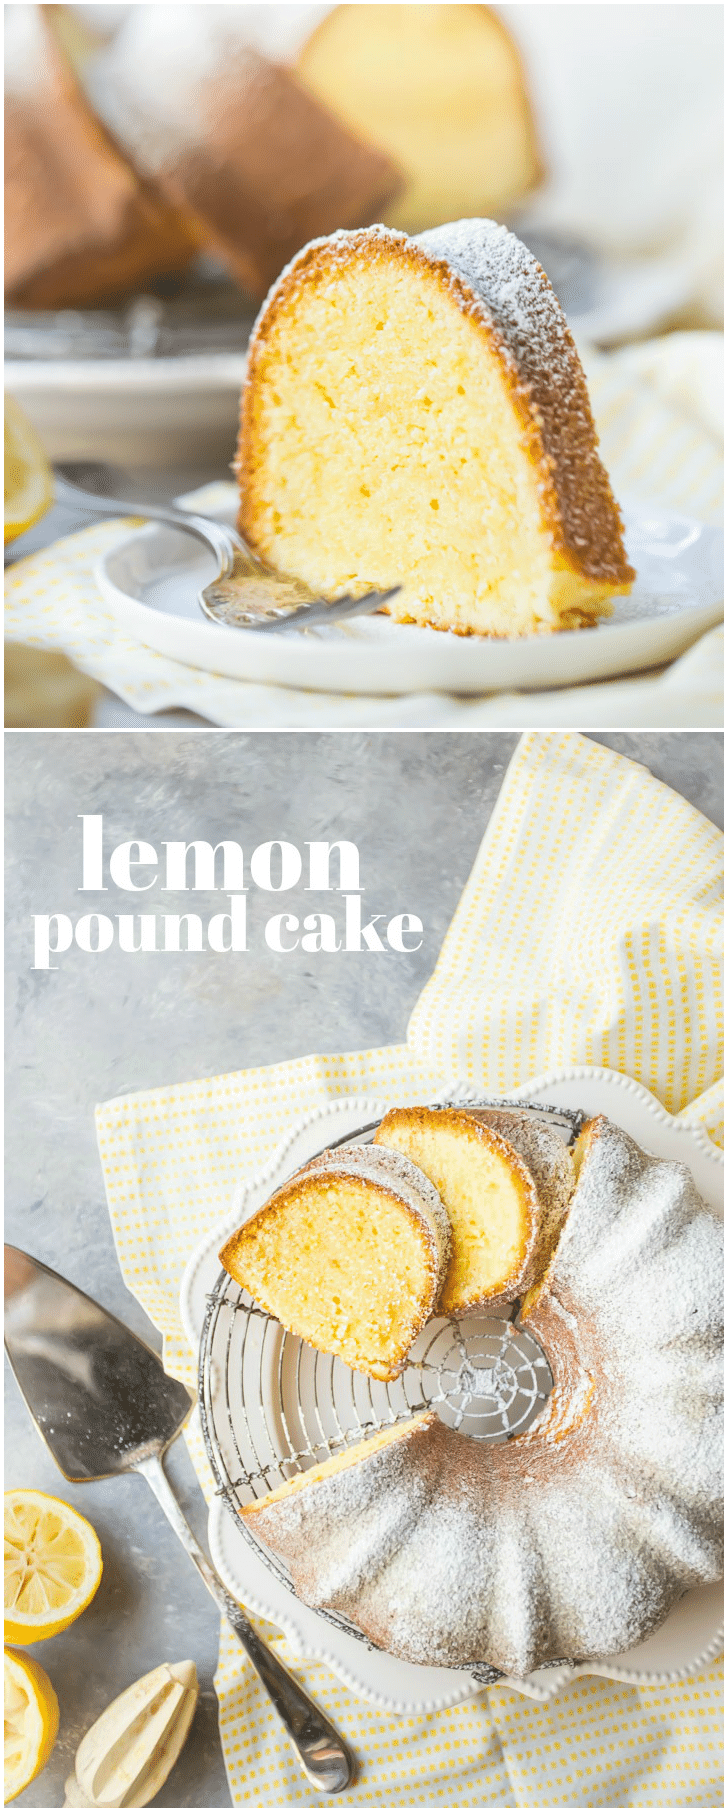 This was the most flavorful lemon pound cake recipe I've ever tried! So much tangy citrus flavor, and so moist and velvety! Loved that it was made with all butter, and only had a few simple ingredients. #lemon #poundcake #bundt #moist #fromscratch #homemade #simple #oldfashioned #southern #best